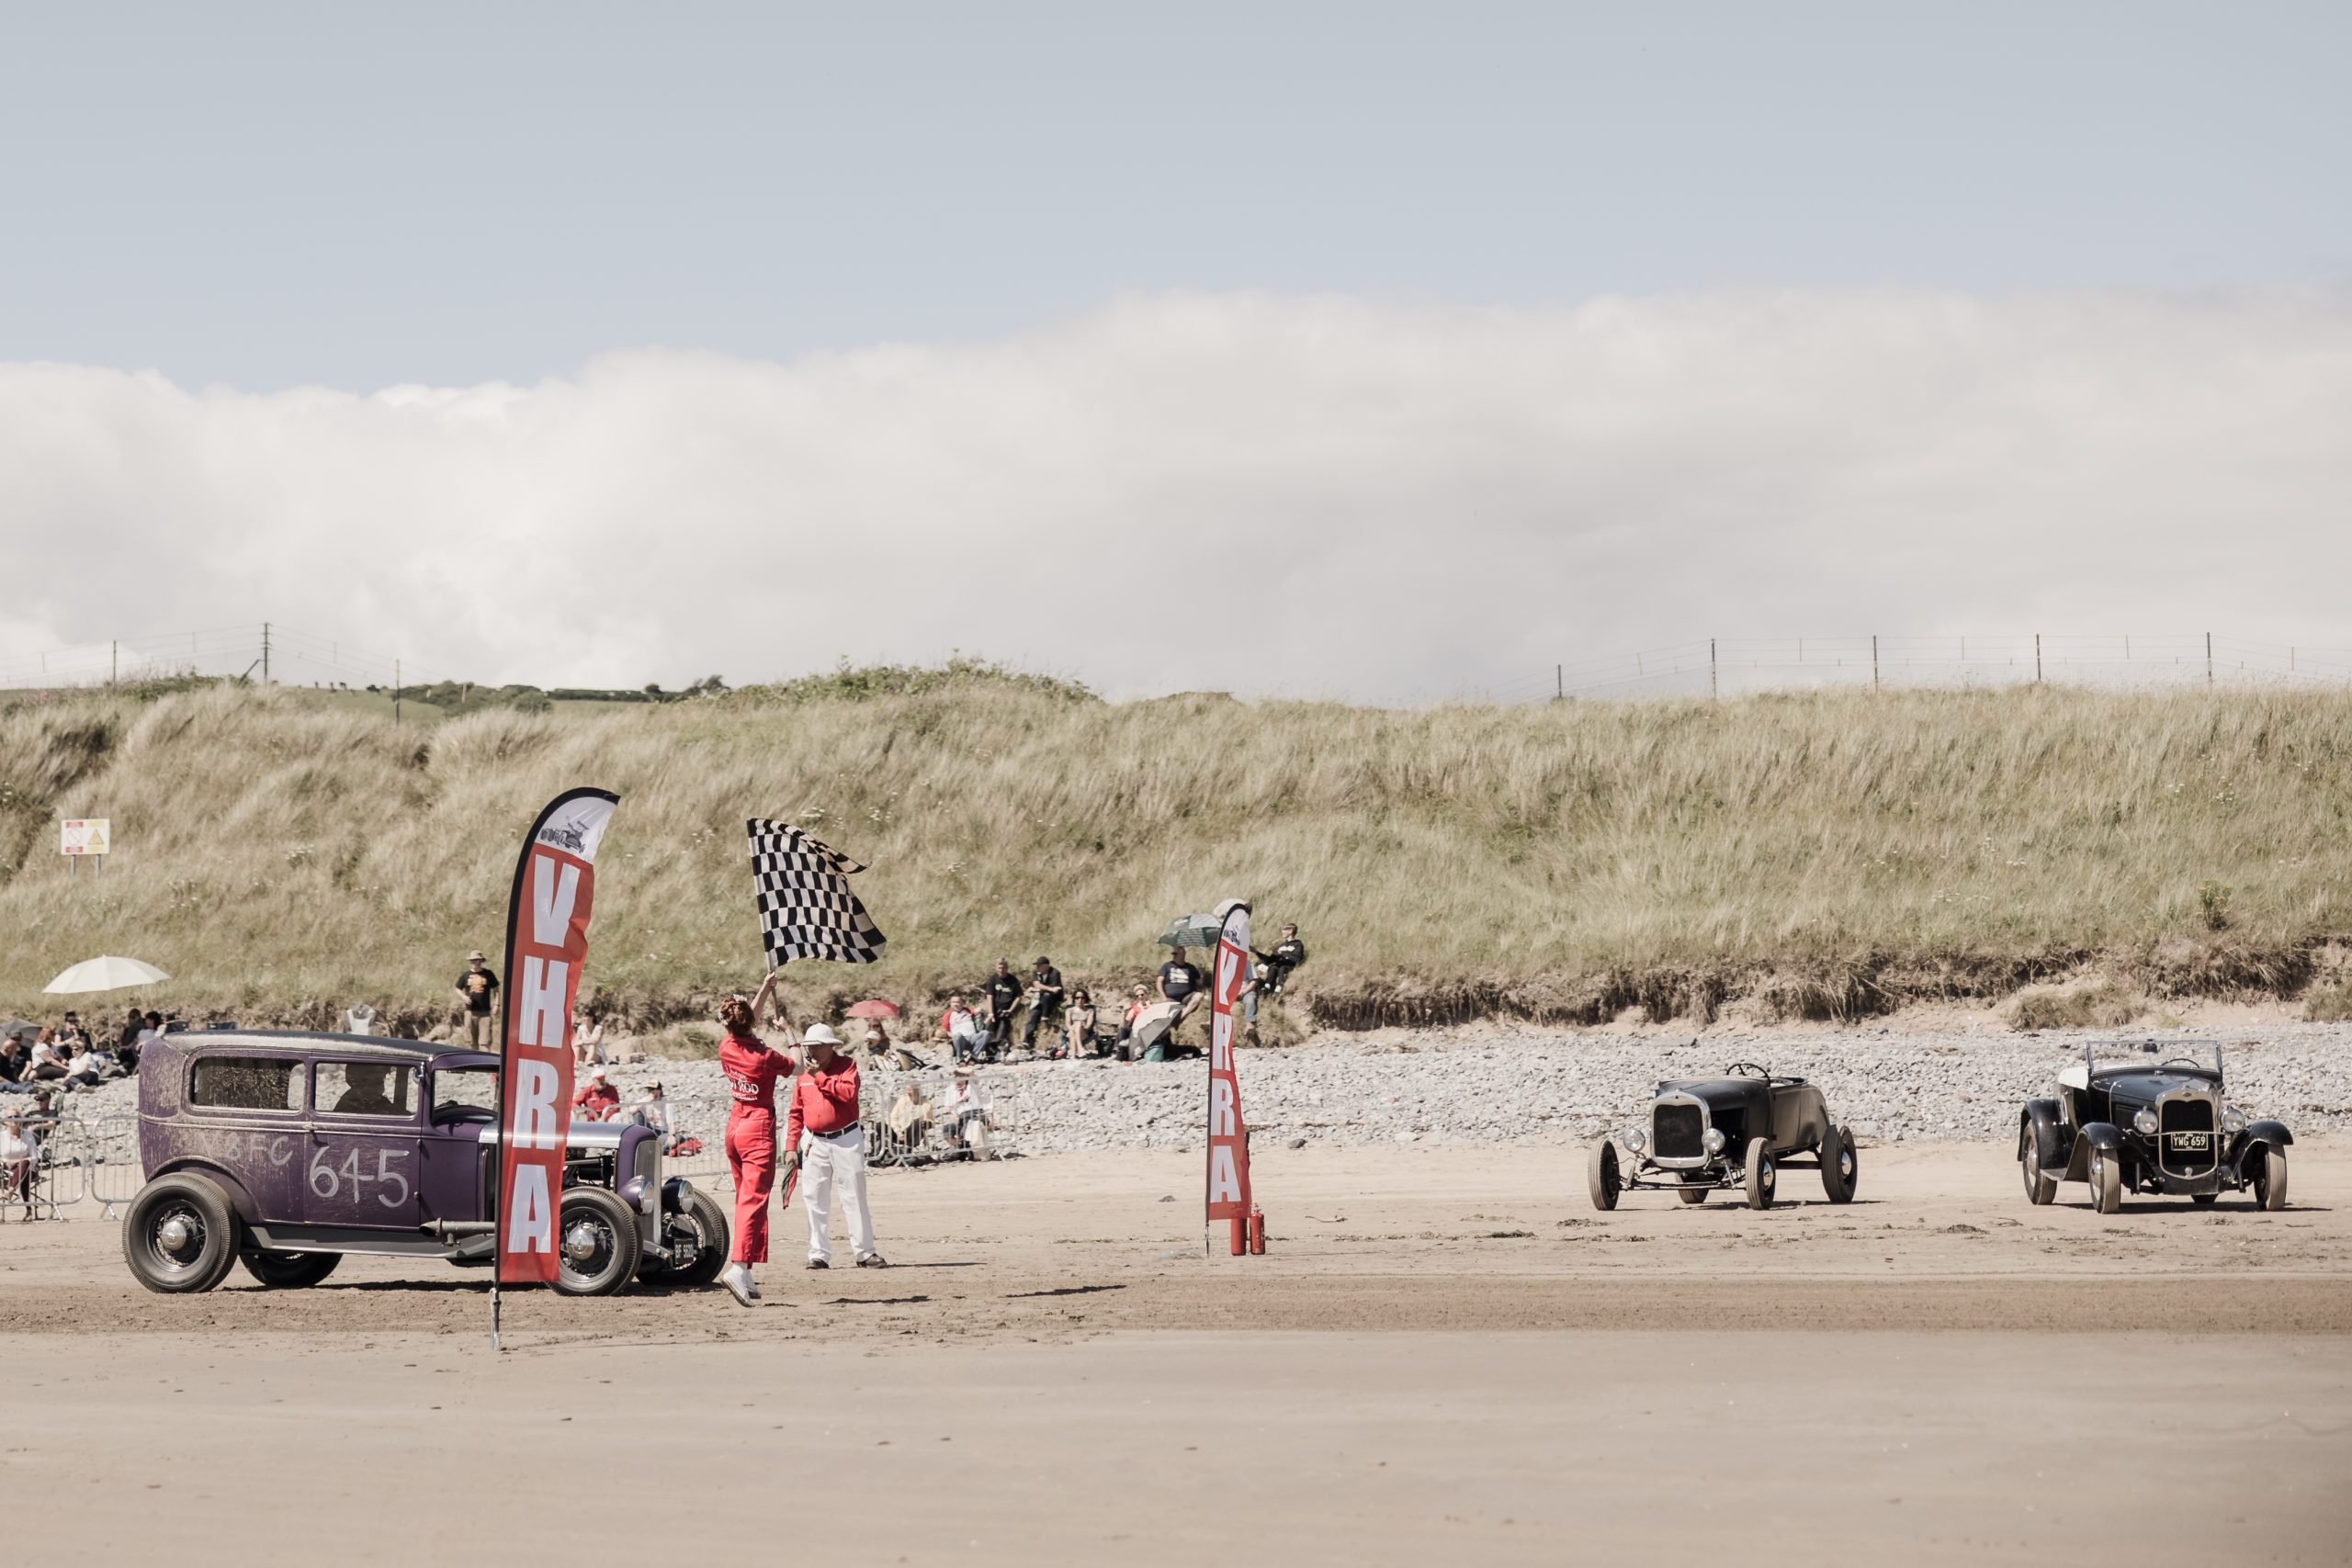 Pendine Sands checkered flag drop wide